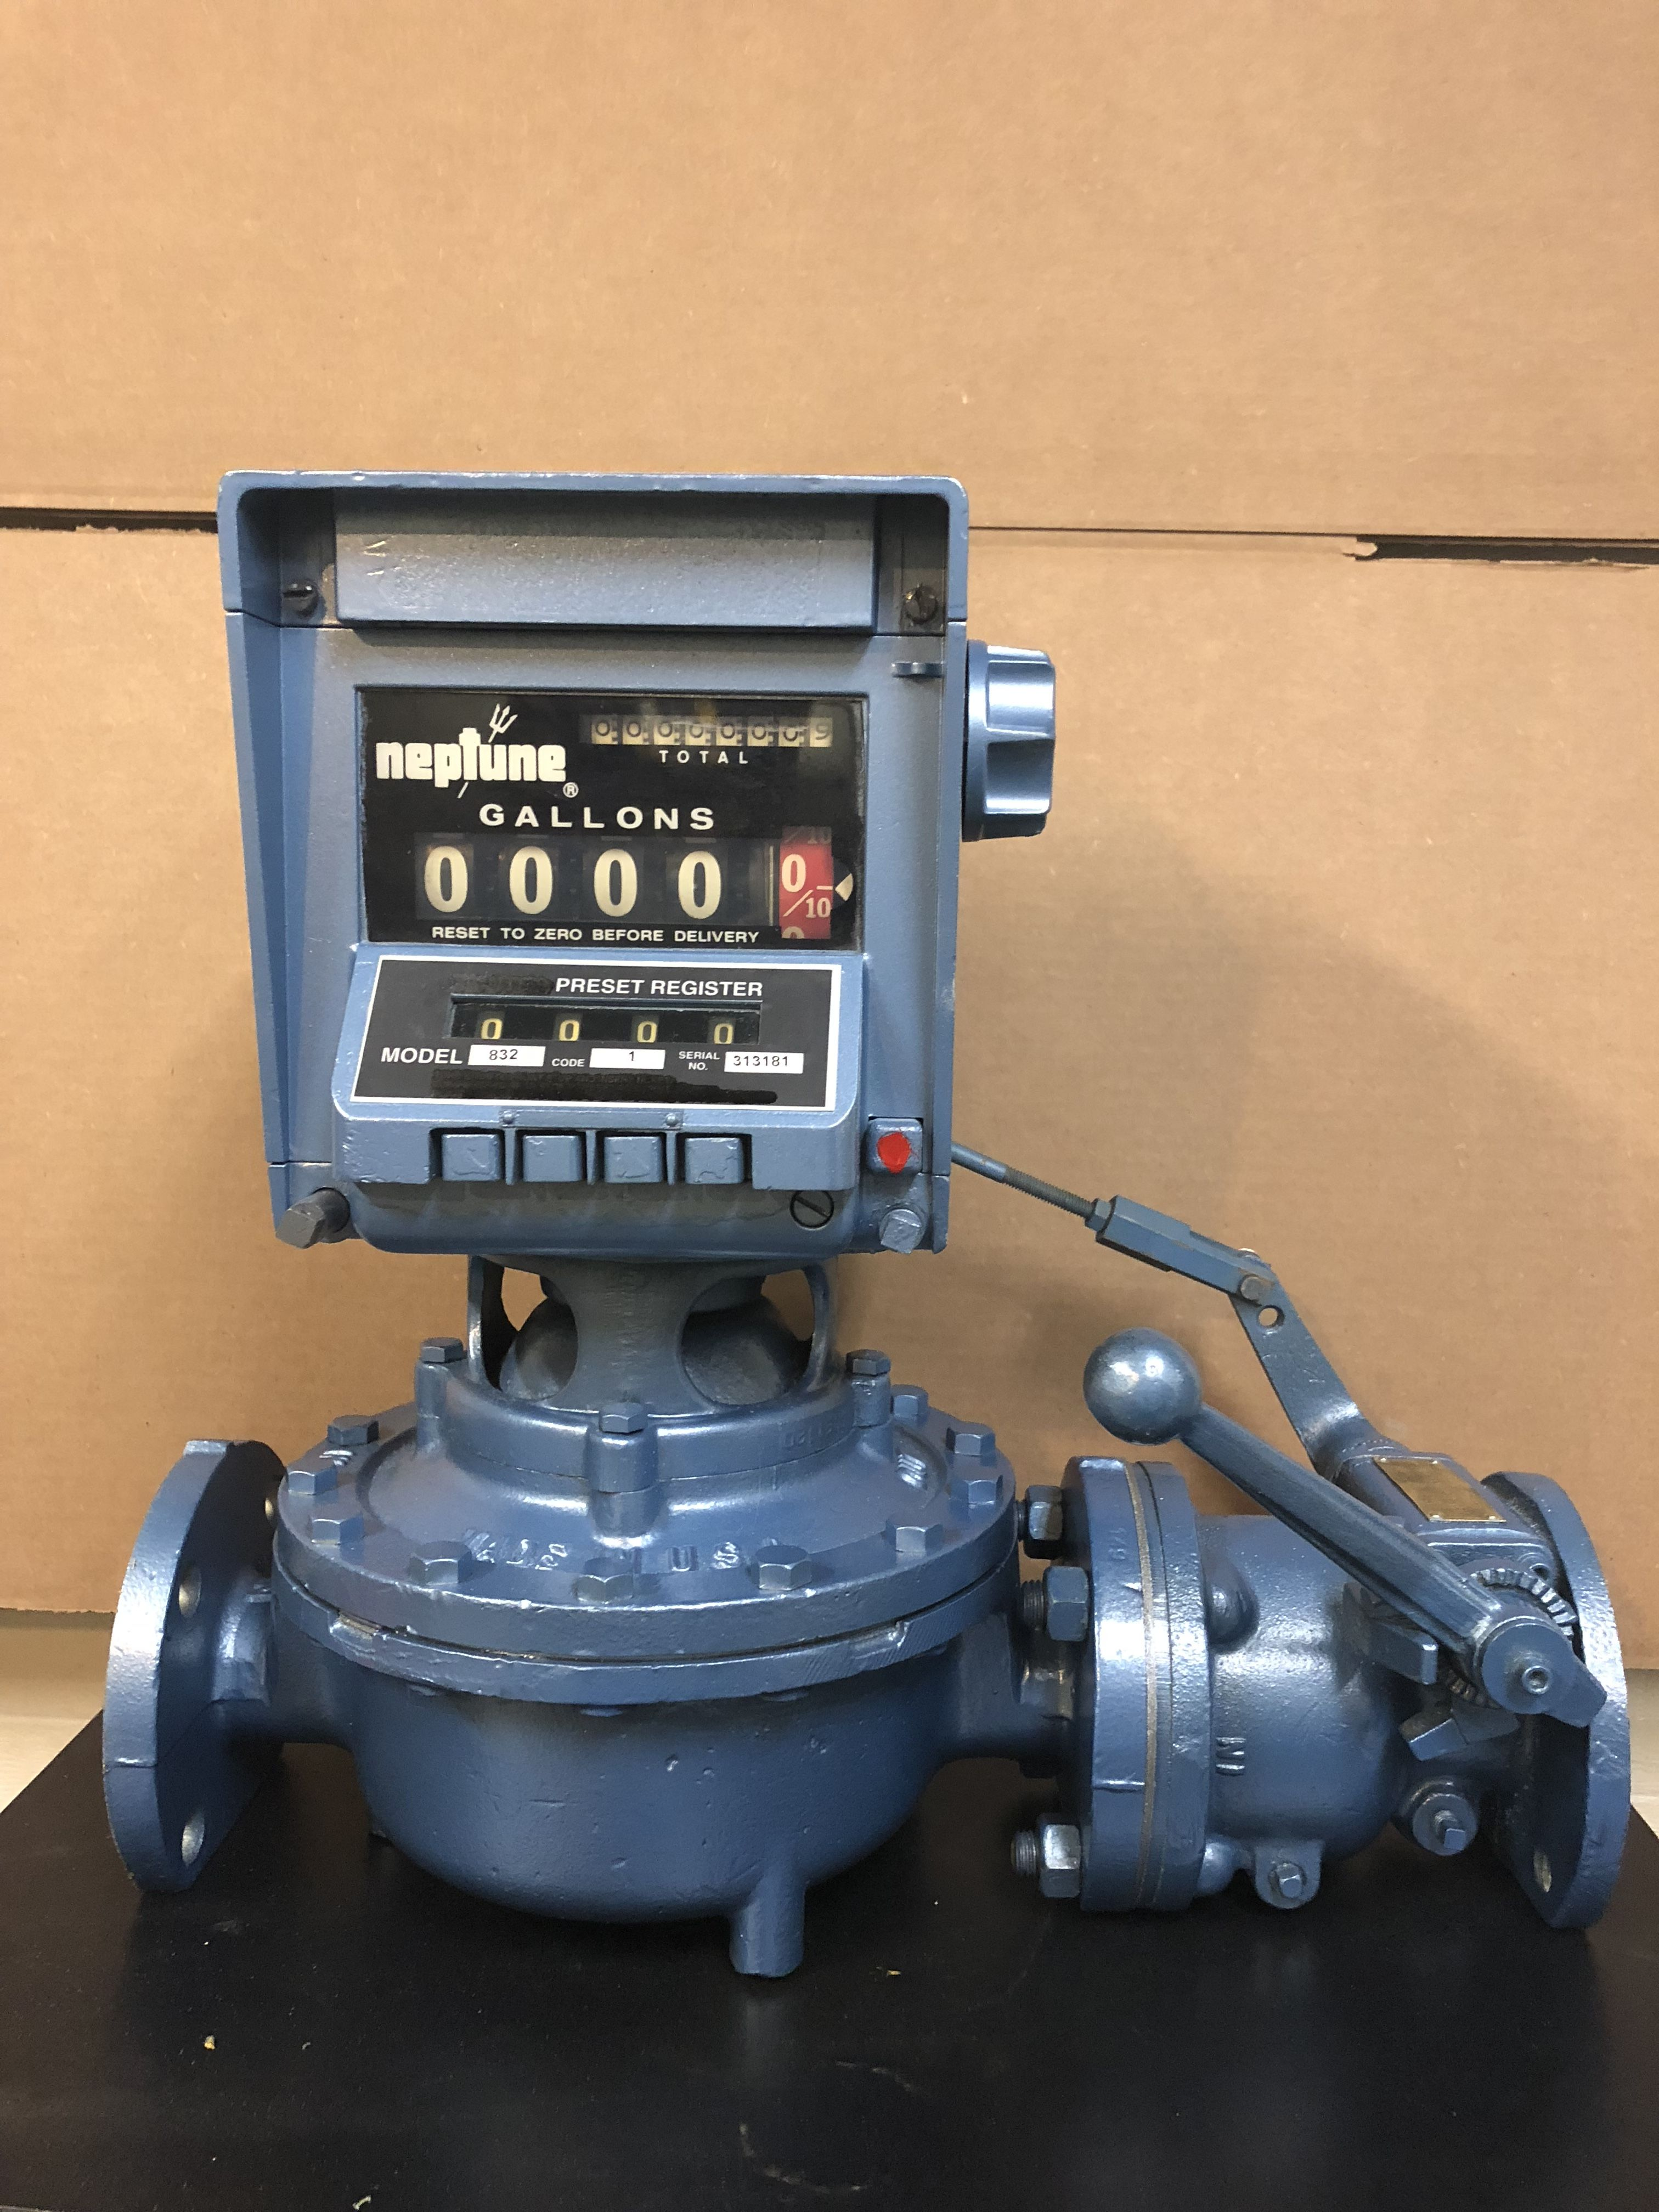 1 2 Neptune Meter With Preset 832 Register And Auto Stop Valve